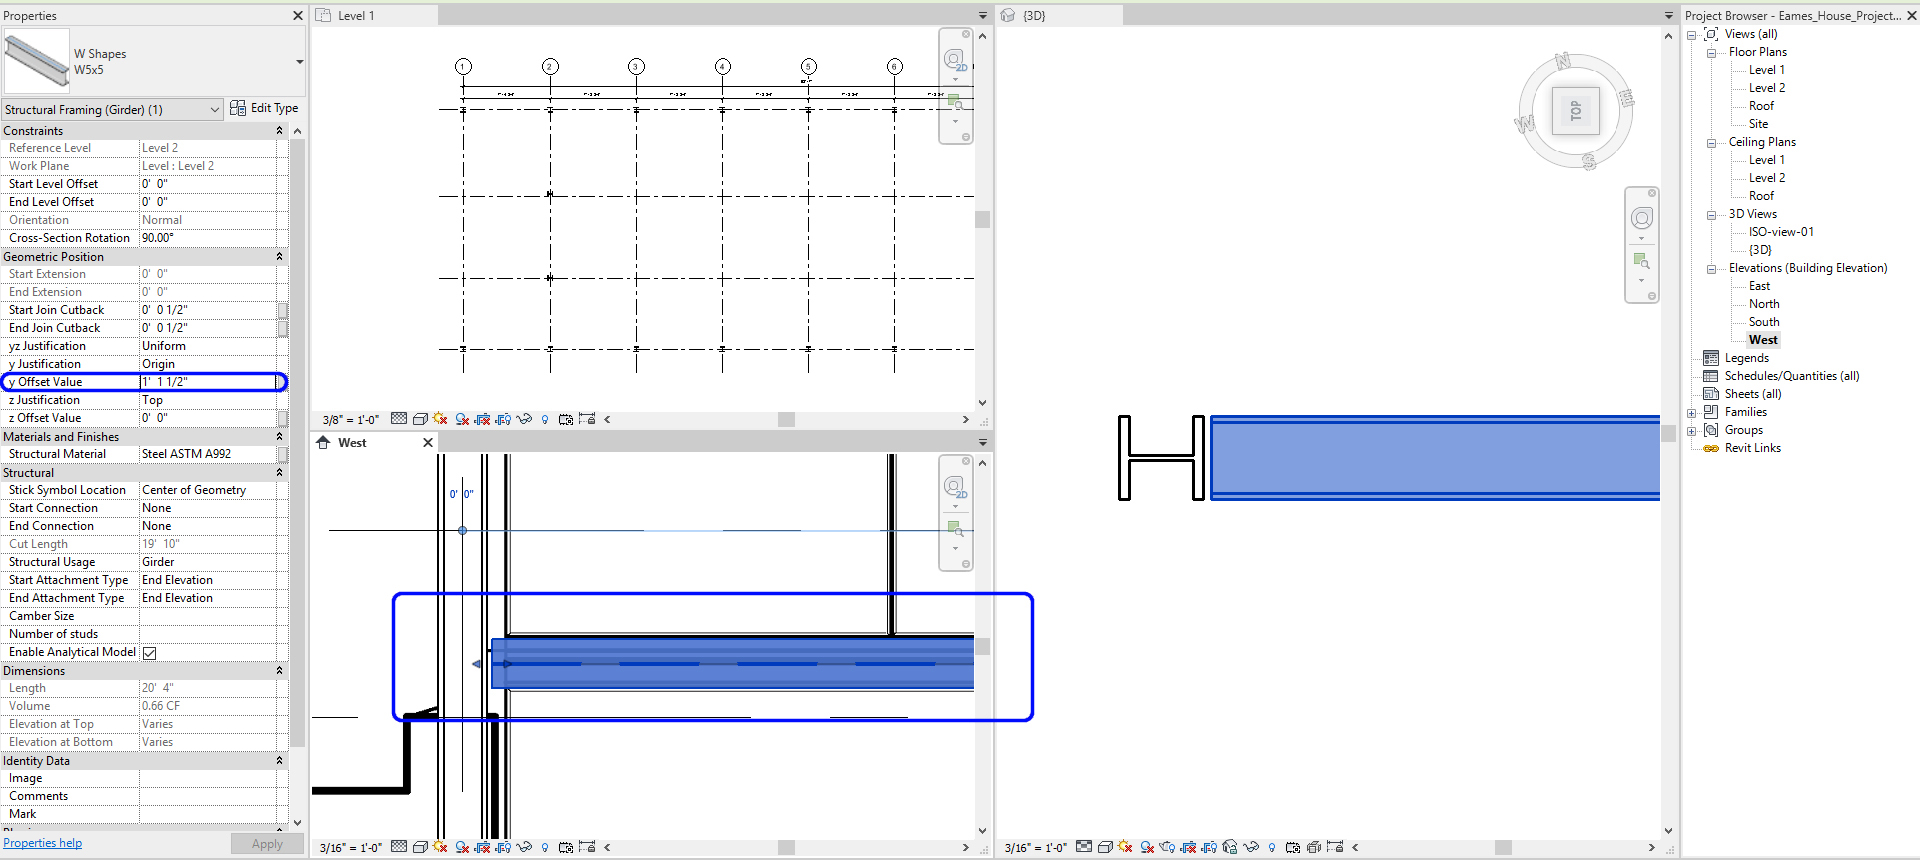 It indicates how to move the beam to align with the imported drawing.